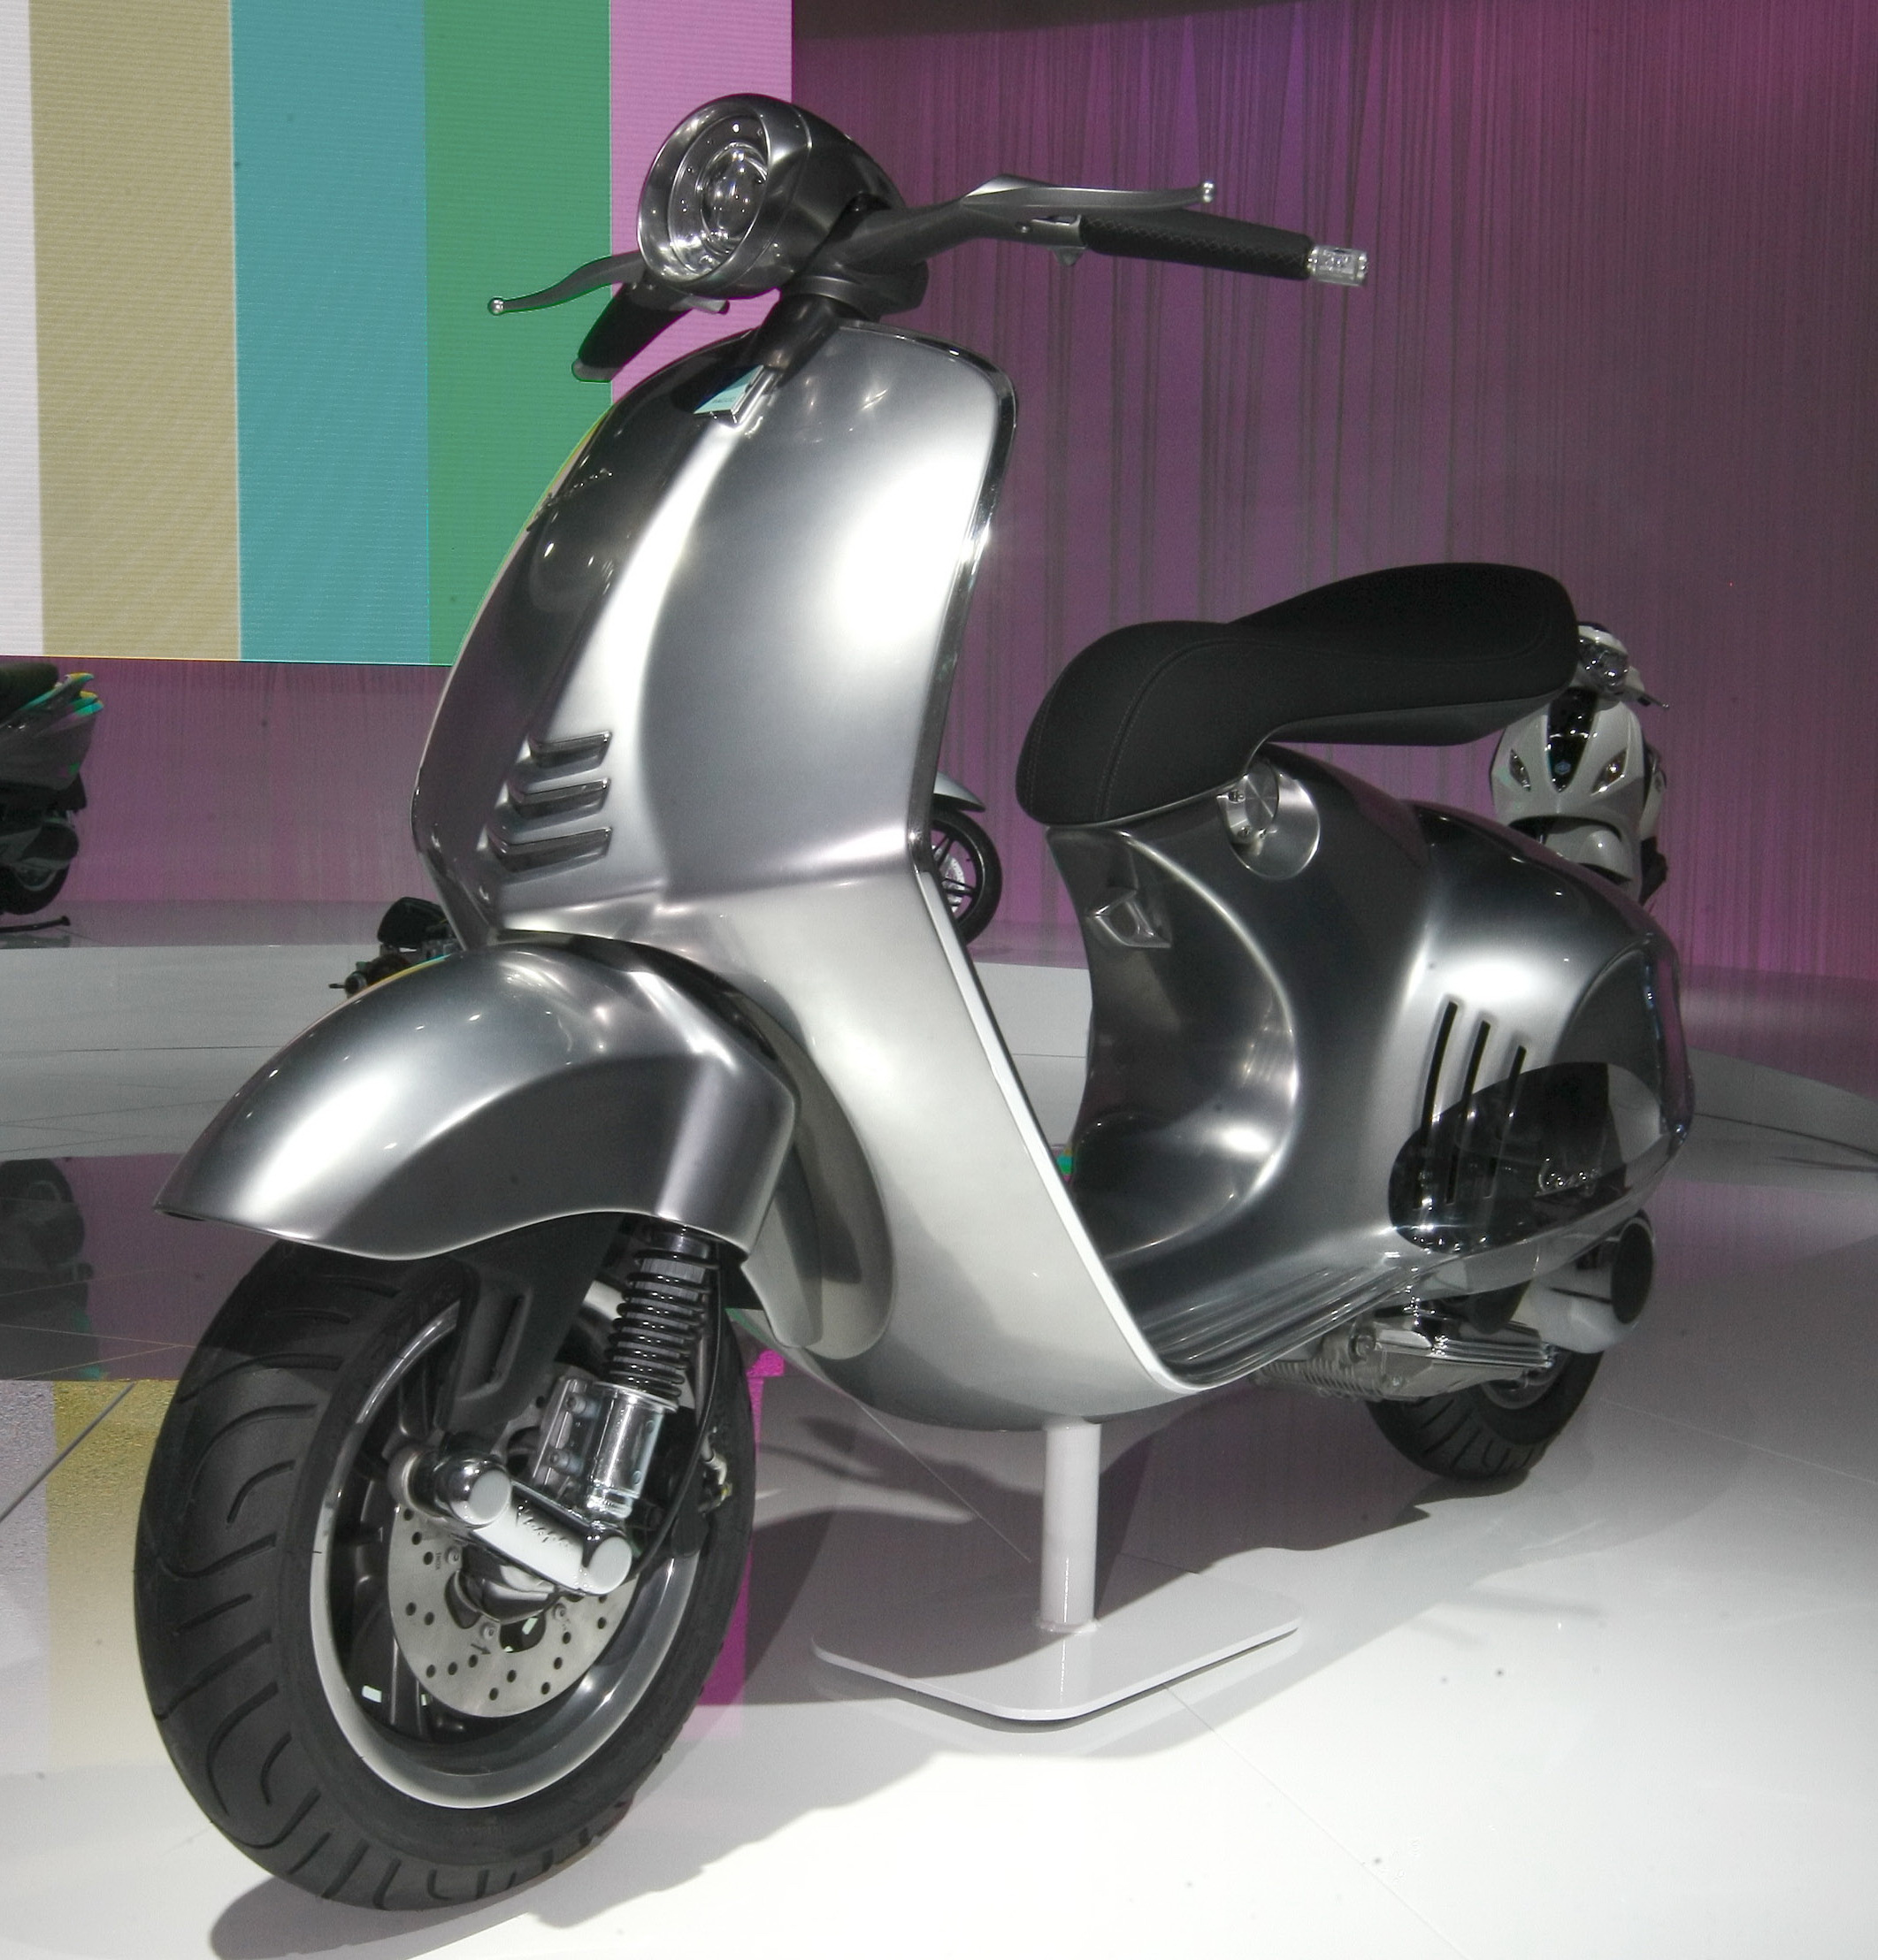 2011 Piaggio Scooters Photos Motorcycle Usa 2017 2018 Best Cars Reviews